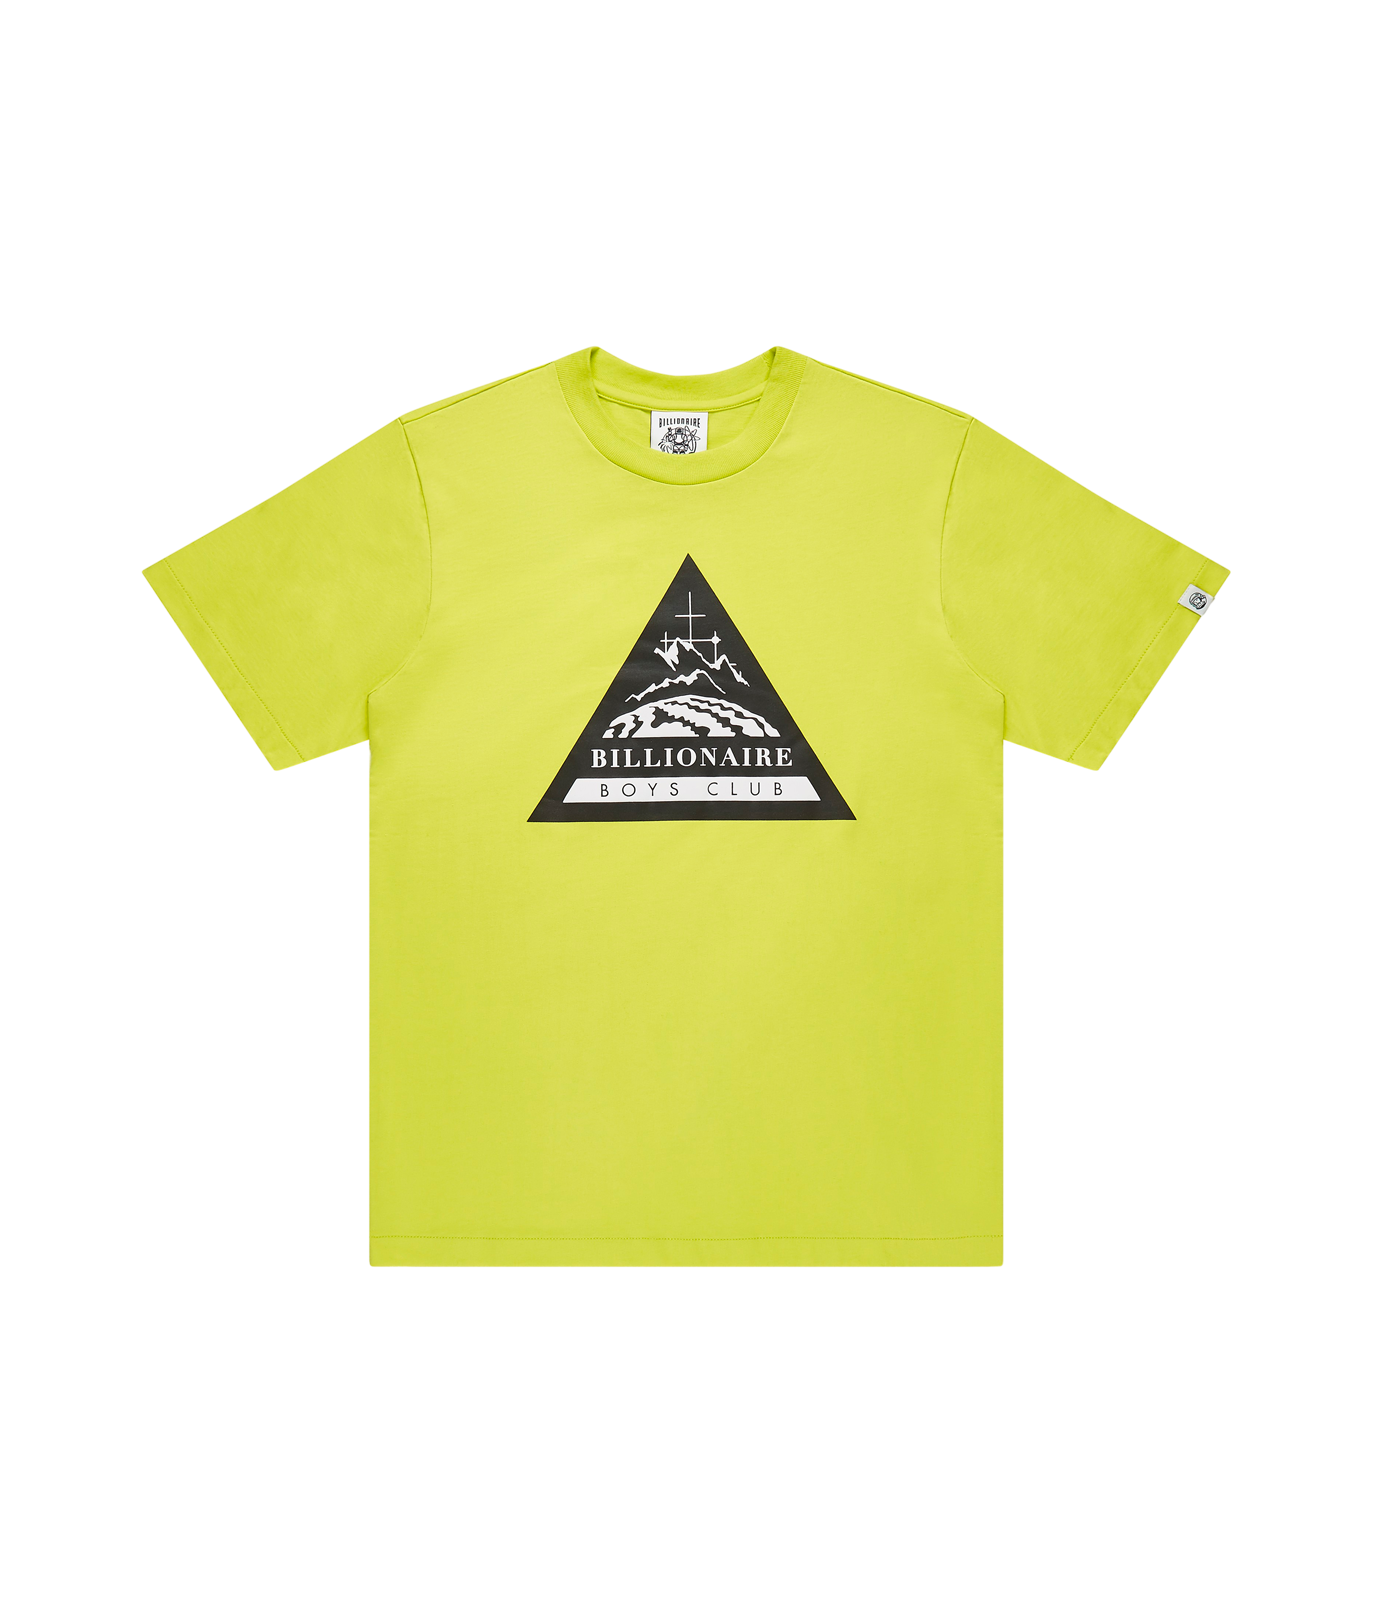 EXPEDITION LOGO T-SHIRT - YELLOW